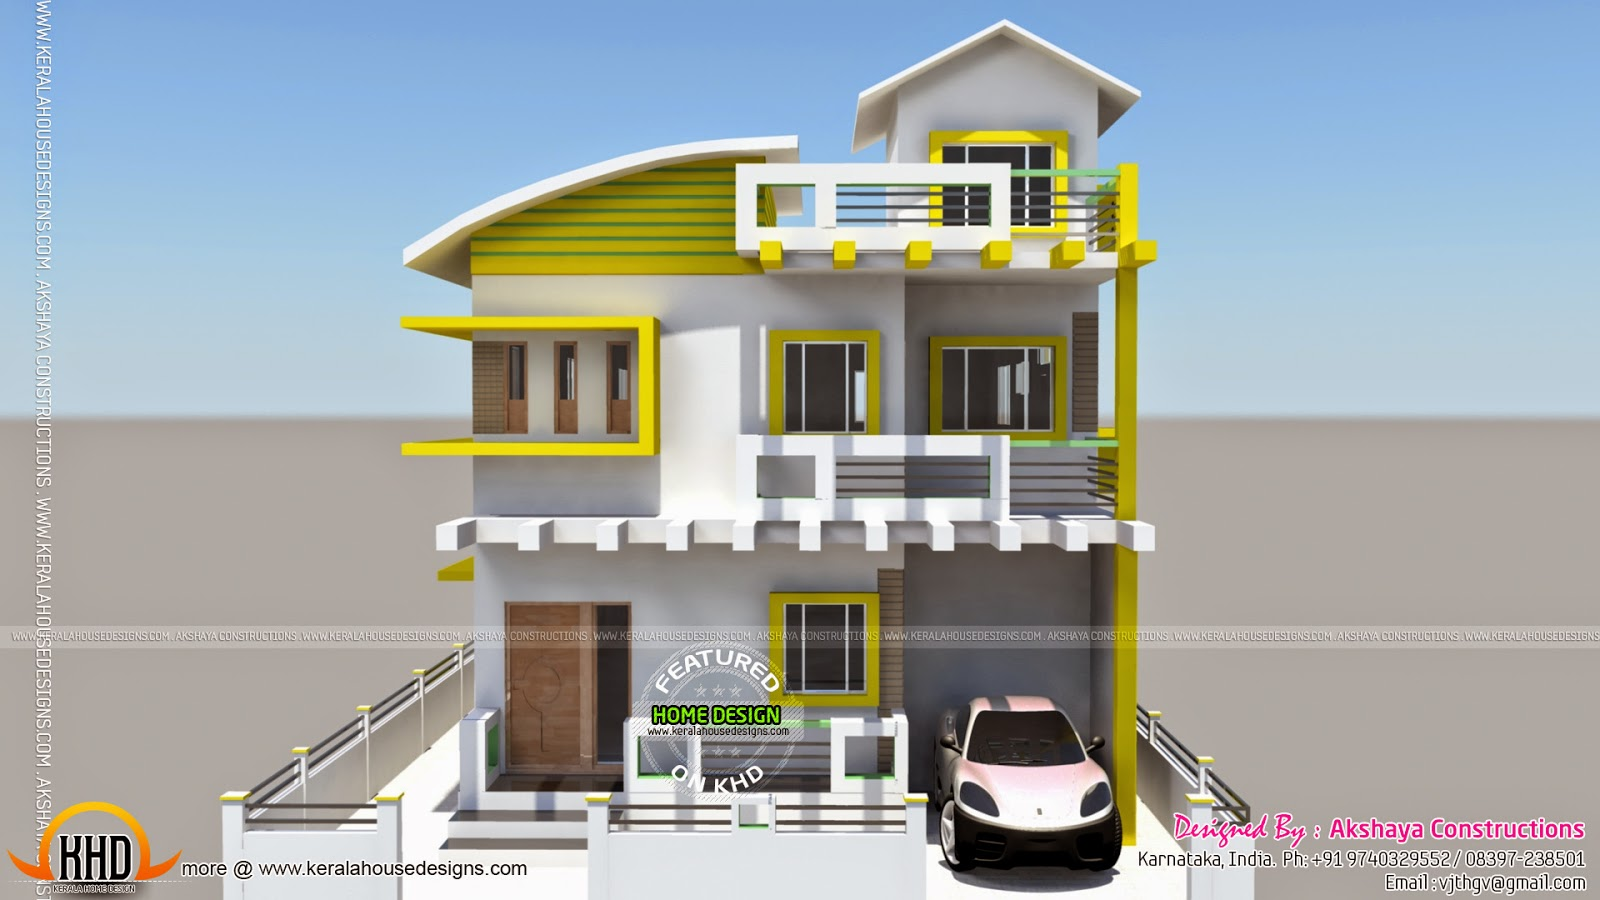 Karnataka home design kerala home design and floor plans for Home remodeling architecture